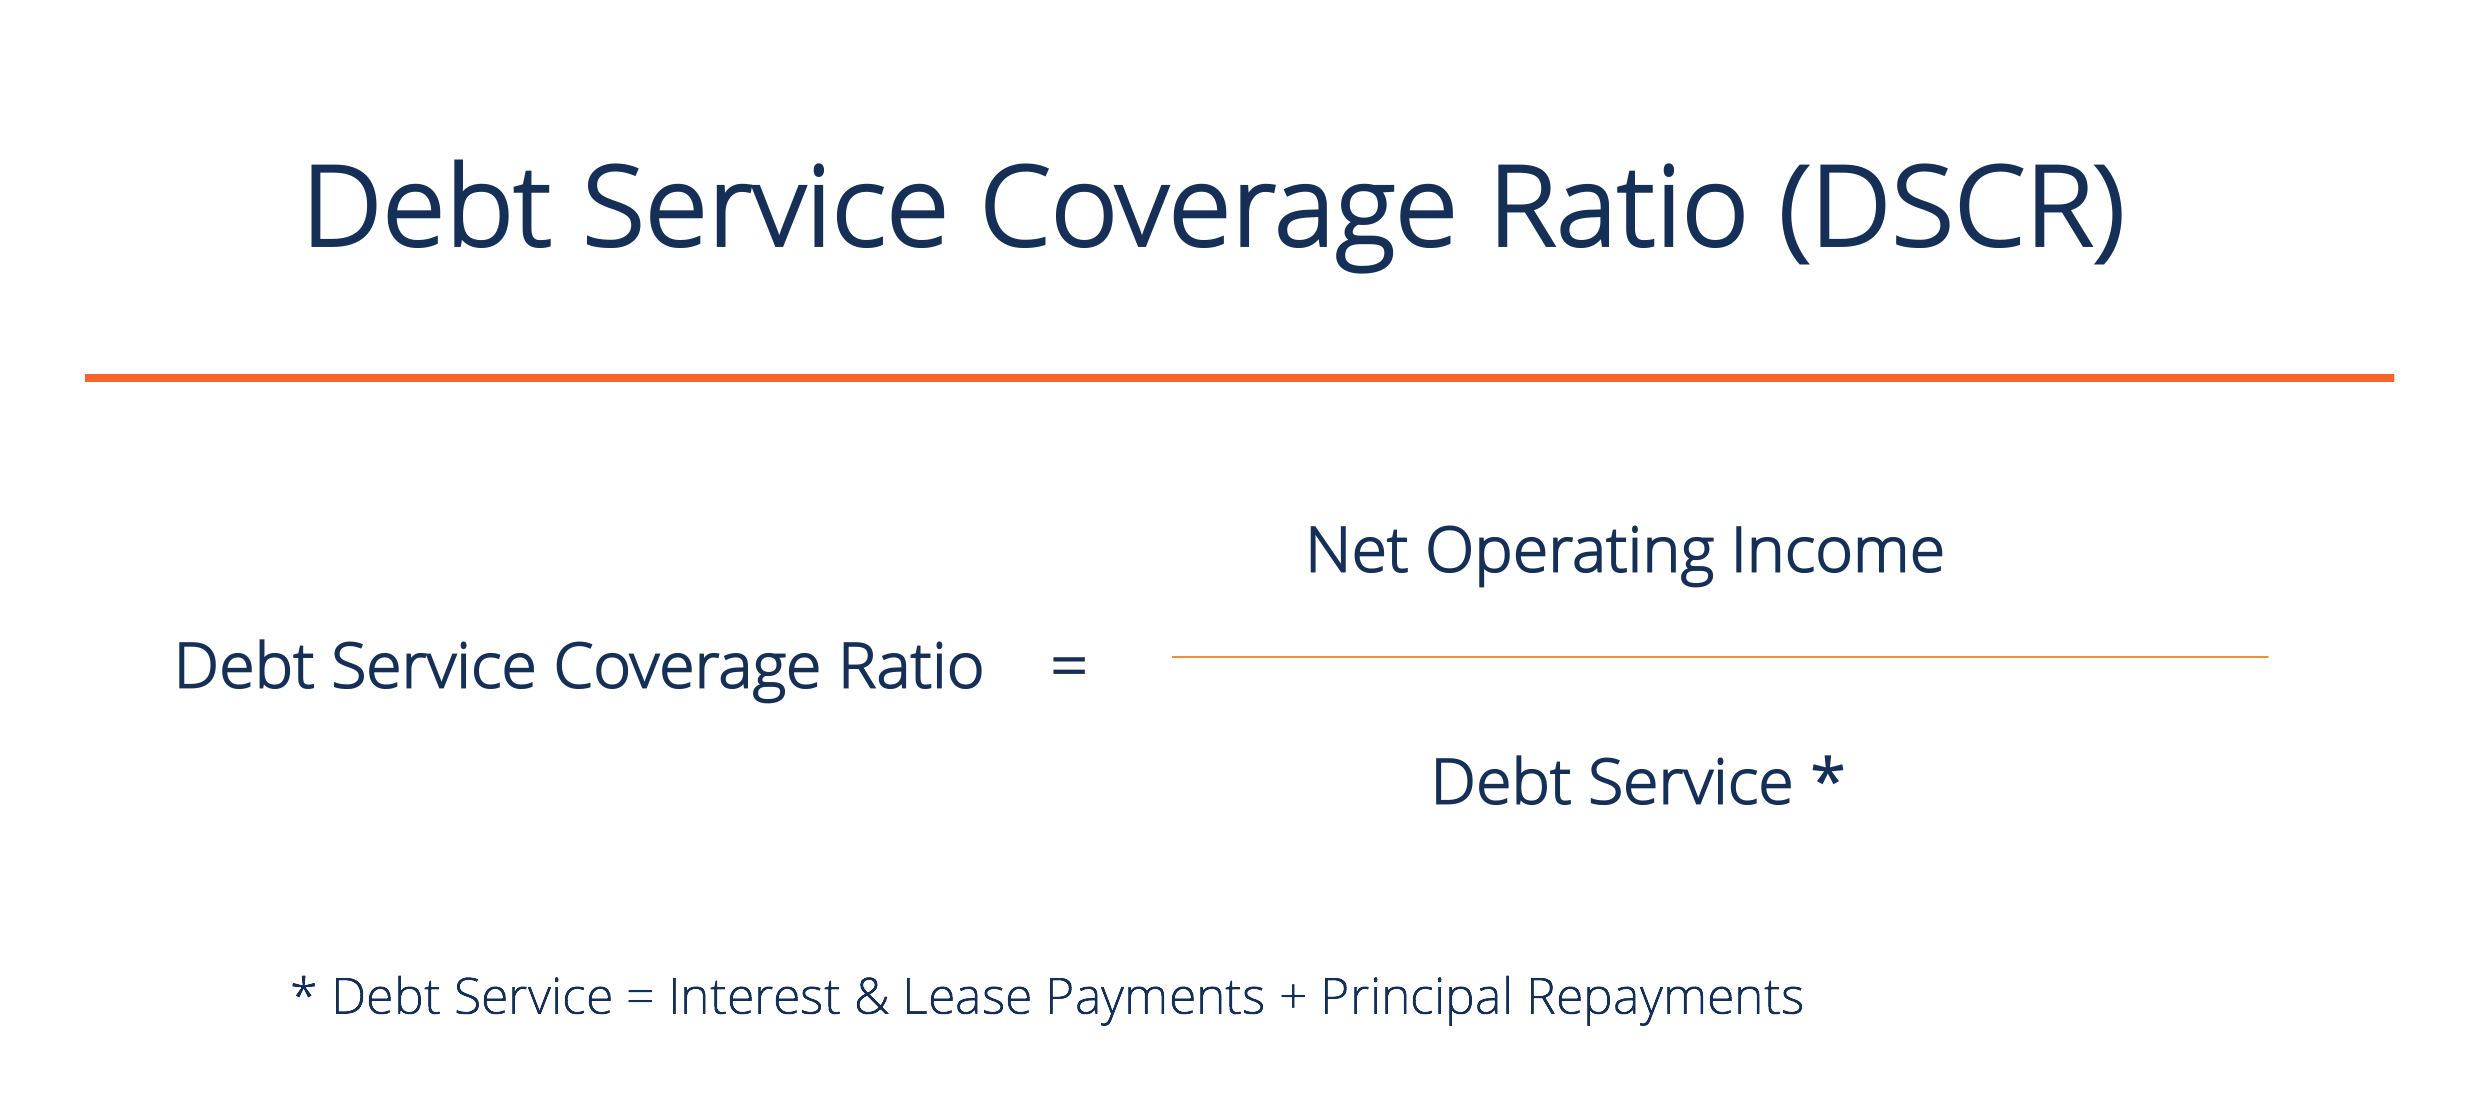 calculate the debt service coverage ratio examples with solutions